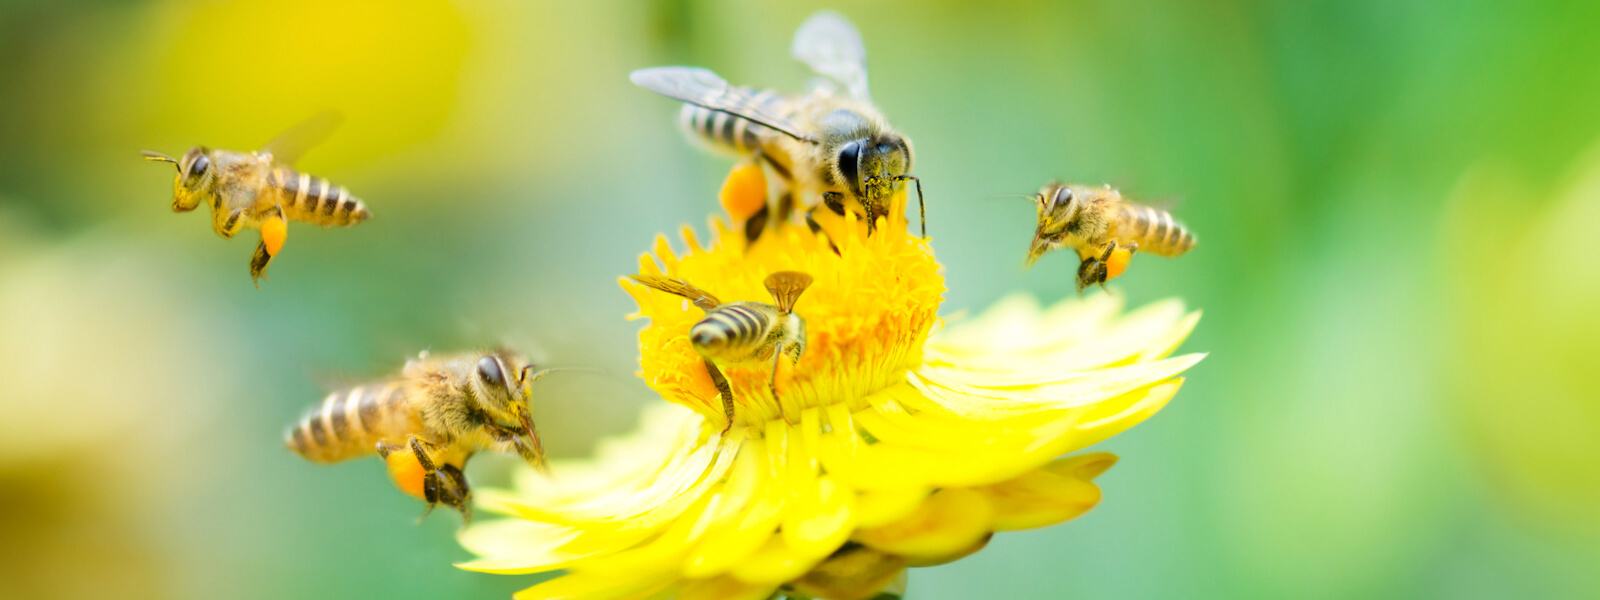 Bees collecting pollen from yellow flower